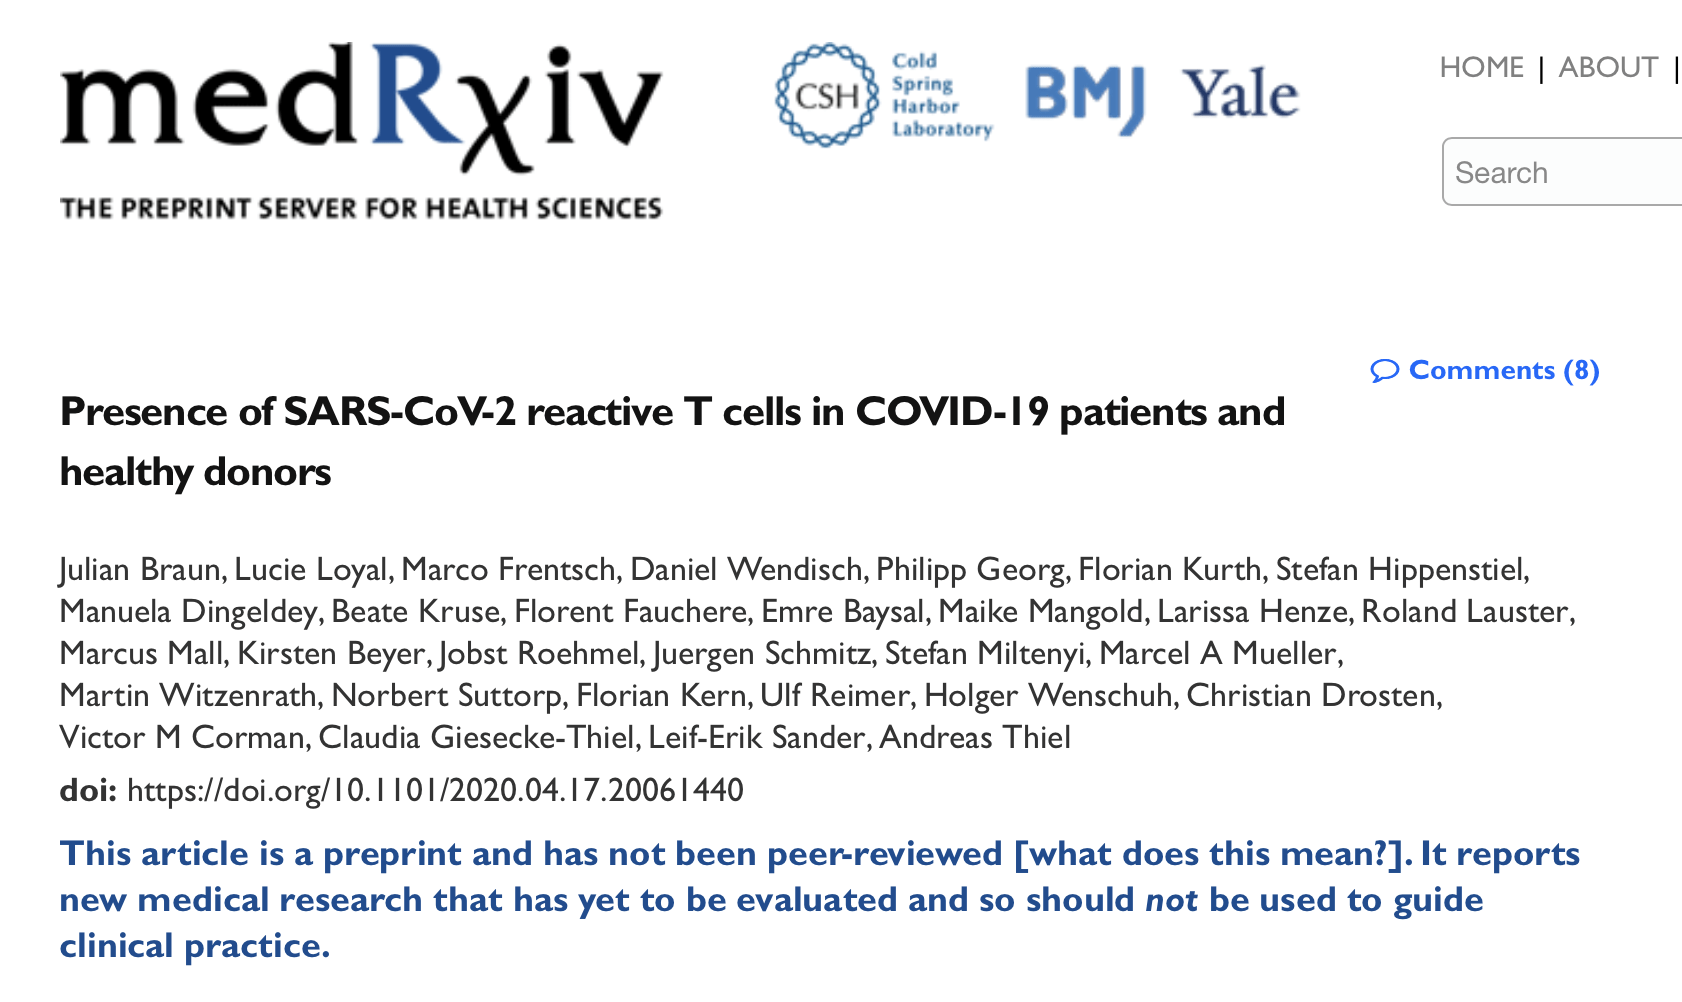 A team of German scientists have found the presence of S-reactive CD4+ T cells in 83% of COVID-19 patients and 34% of SARS-CoV-2 seronegative healthy donors. Paul Thomas, M.D., discusses the truth about COVID-19